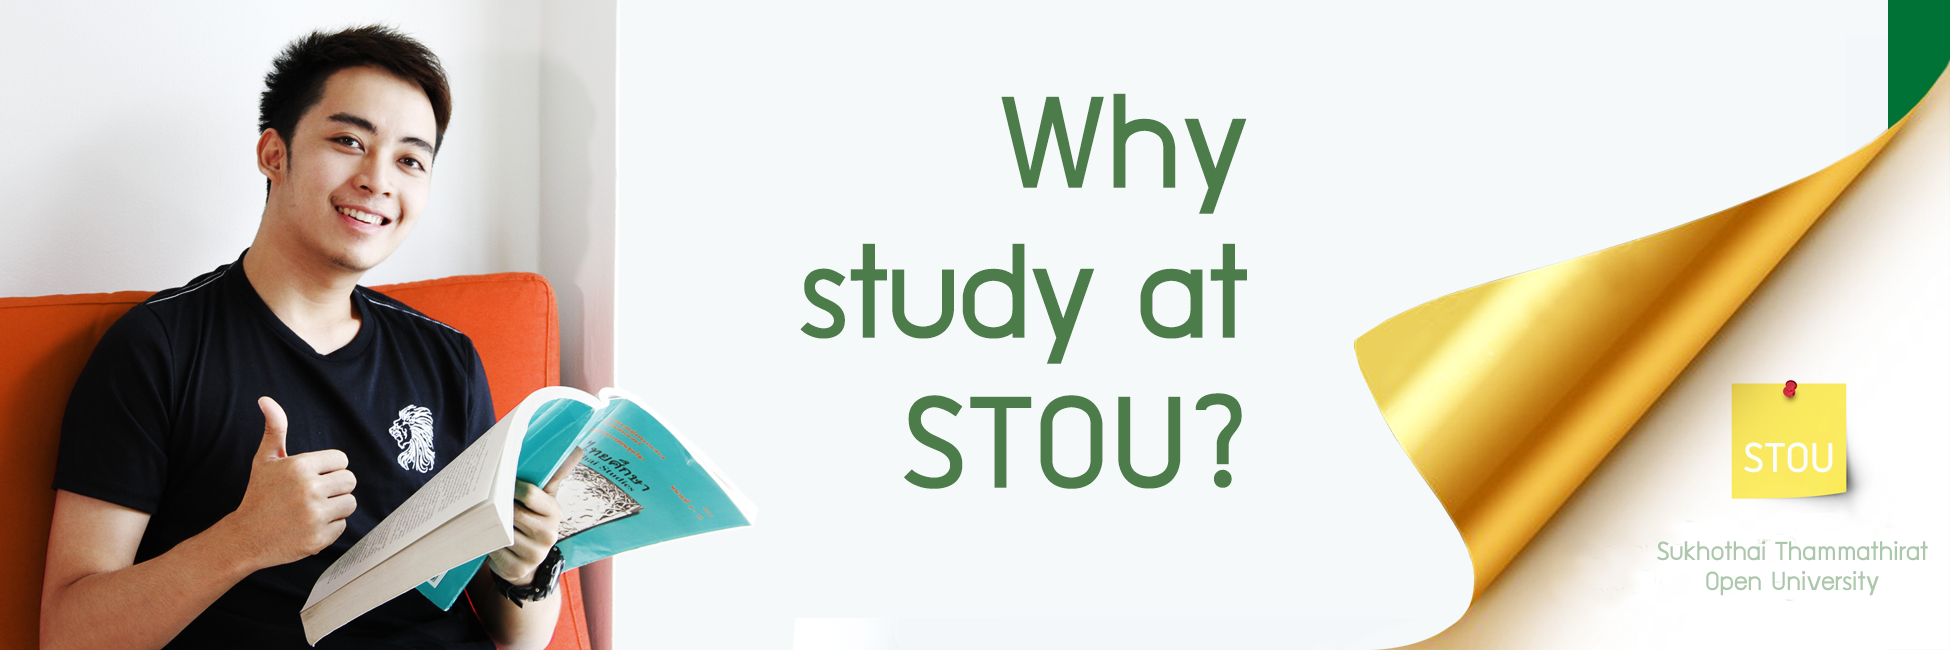 Why study at STOU?